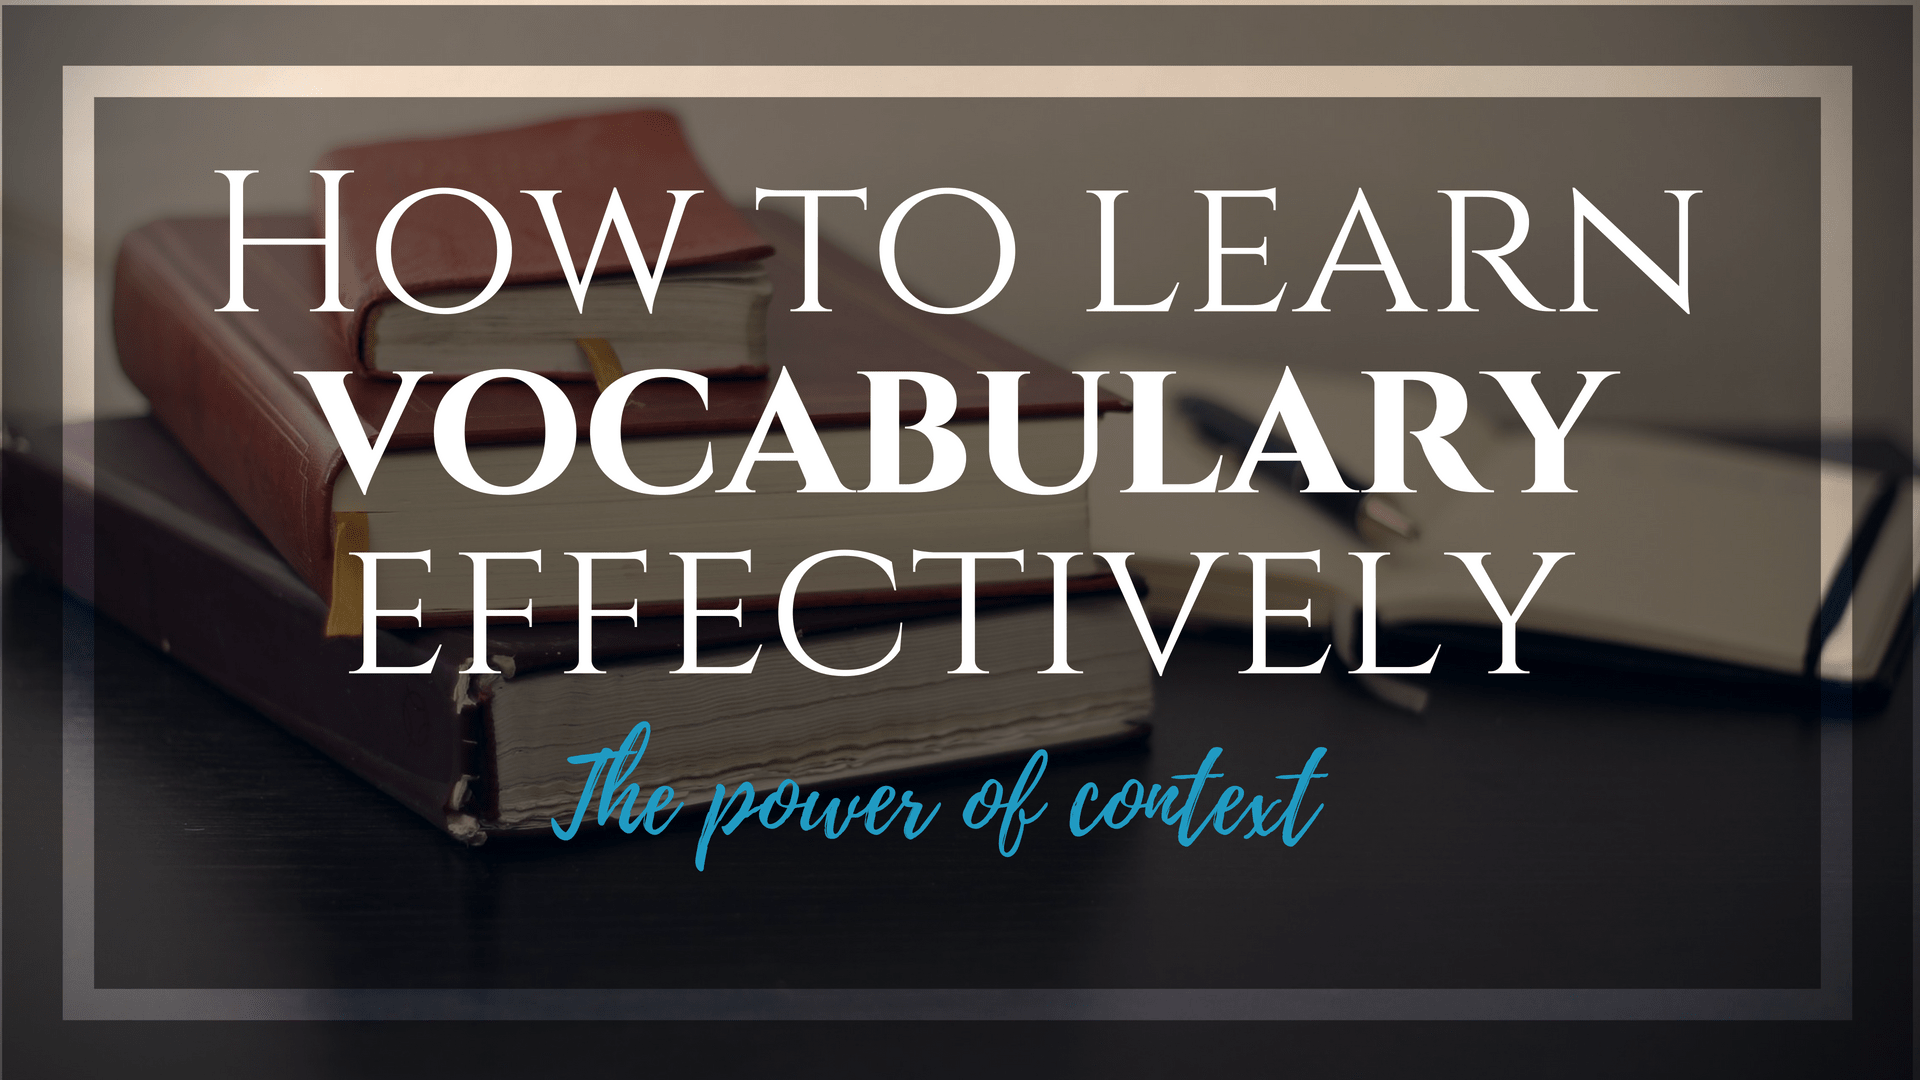 Mastering the context is the simple answer on how to learn vocabulary effectively